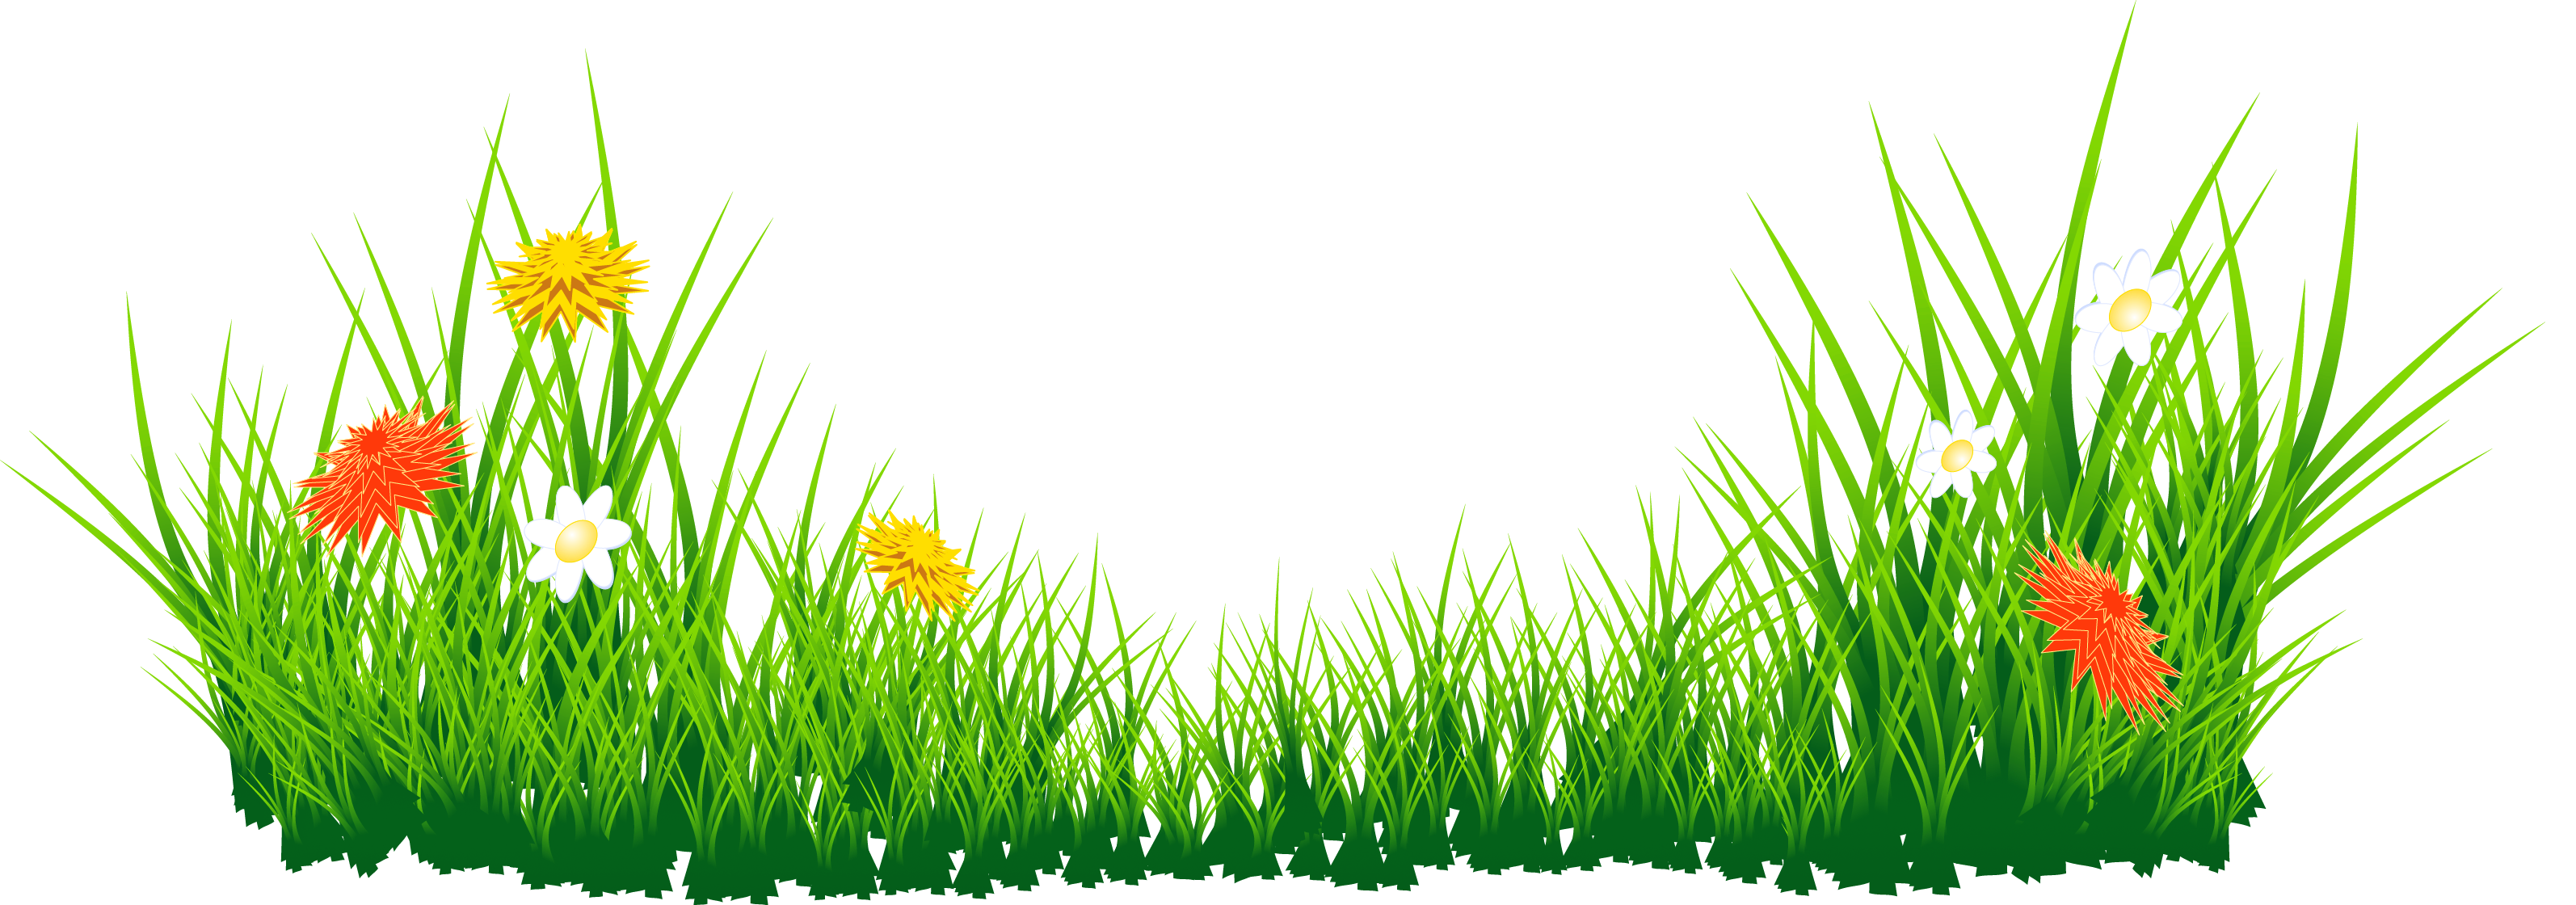 Easter Grass PNG Image